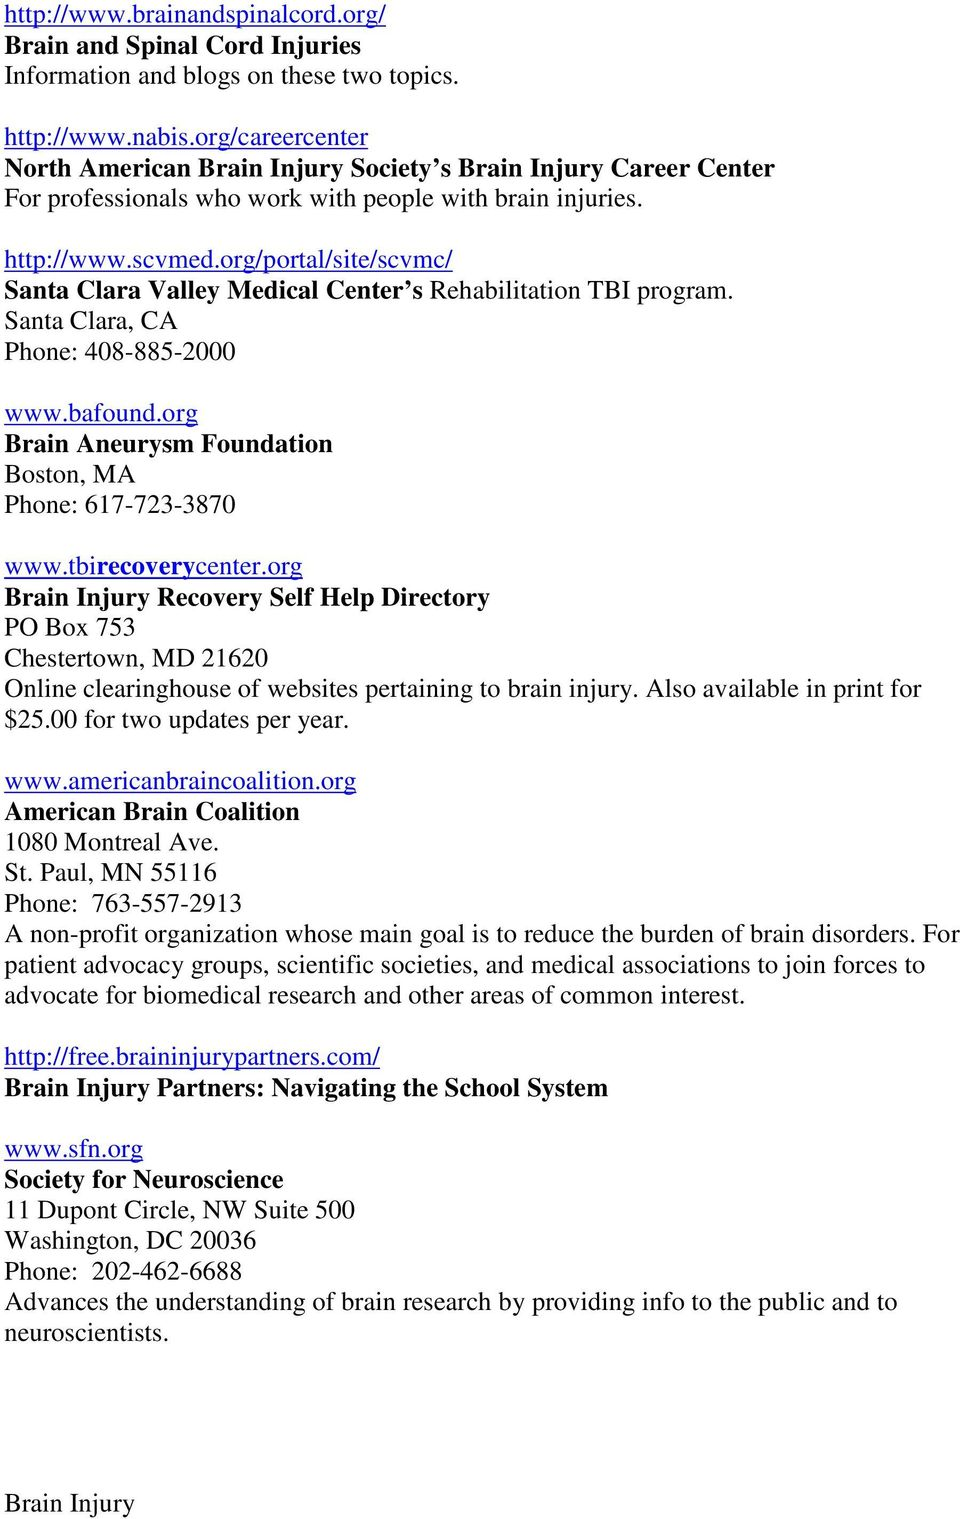 org/portal/site/scvmc/ Santa Clara Valley Medical Center s Rehabilitation TBI program. Santa Clara, CA Phone: 408-885-2000 www.bafound.org Brain Aneurysm Foundation Boston, MA Phone: 617-723-3870 www.